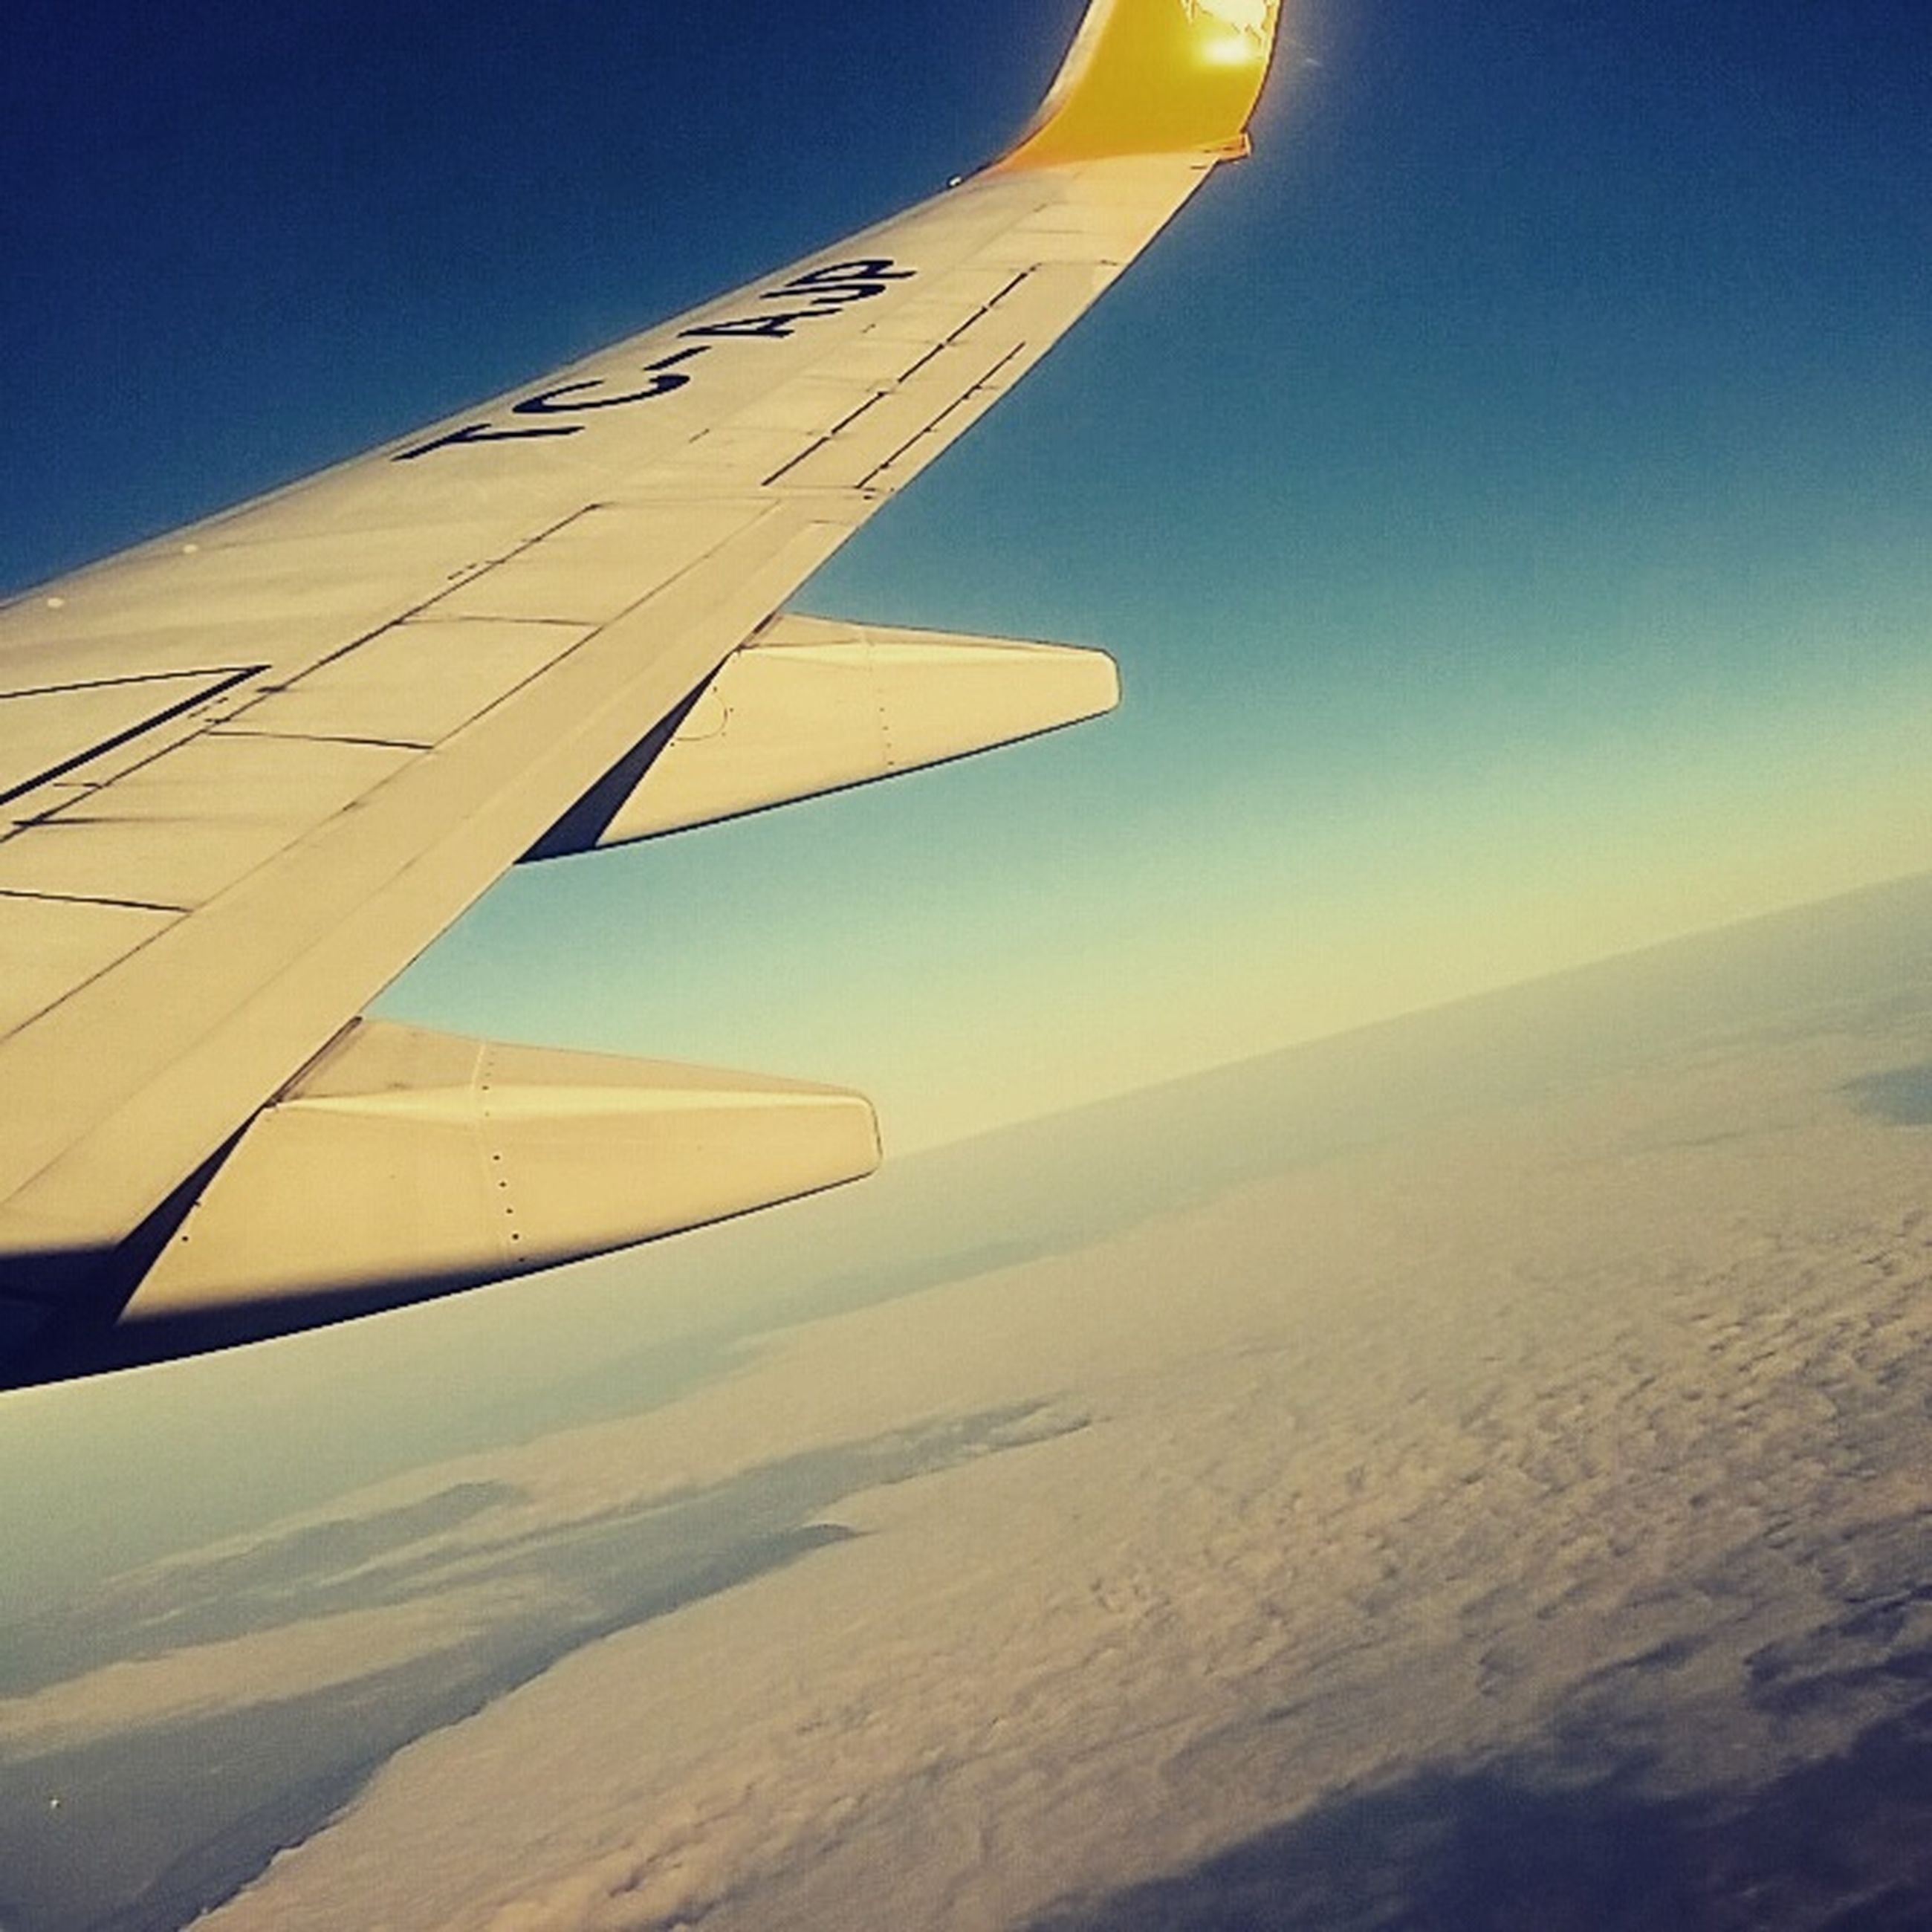 transportation, aircraft wing, mode of transport, air vehicle, part of, cropped, journey, aerial view, public transportation, landscape, on the move, mid-air, vehicle part, sky, scenics, sunset, beauty in nature, nature, blue, outdoors, no people, tranquility, tranquil scene, horizon over land, idyllic